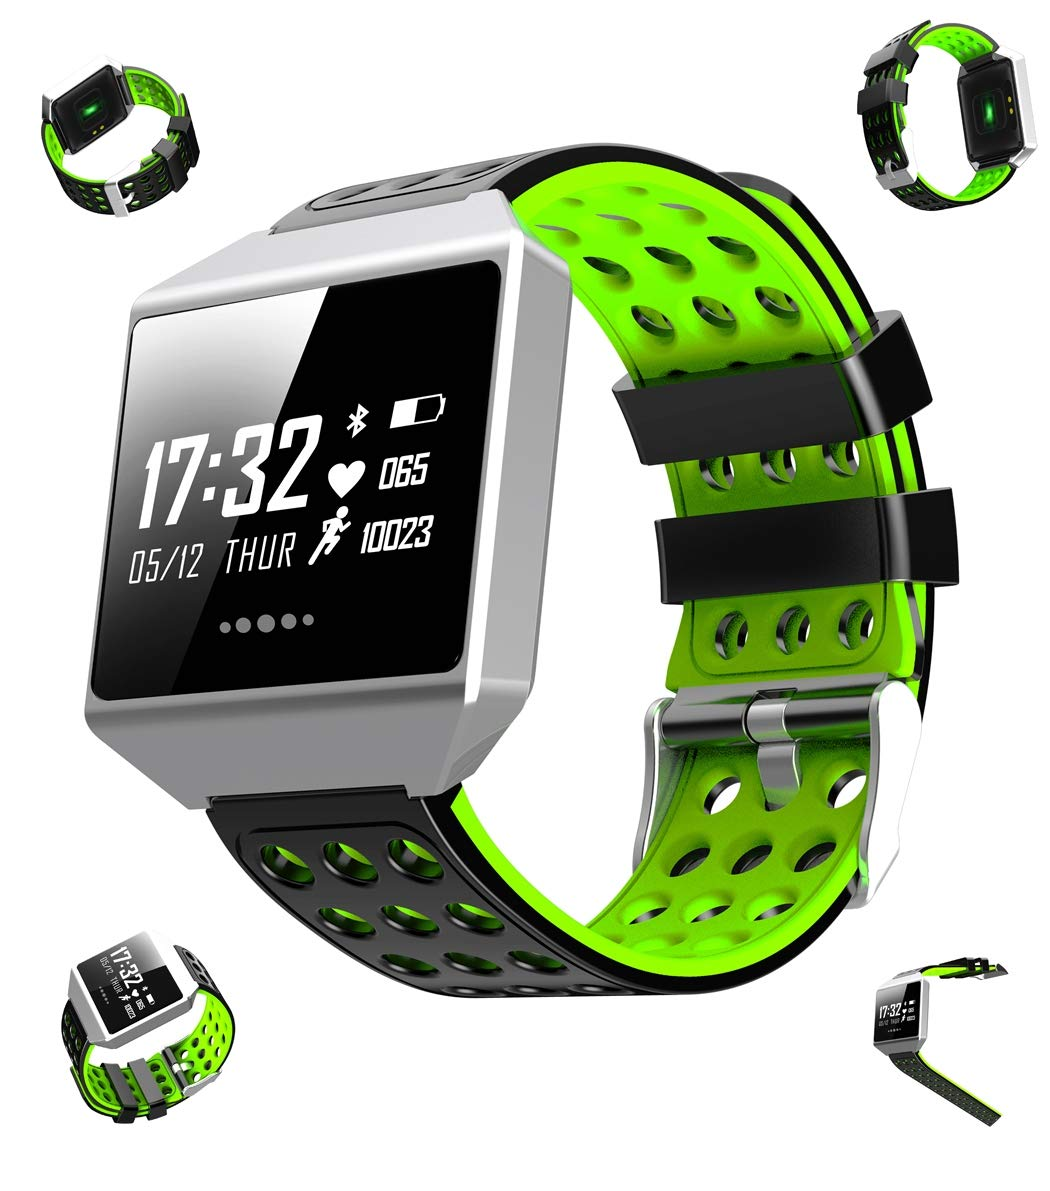 WLH Smart Watch, Blood Pressure,Heart Rate, Sleep Monitor,Sport,Call Reminder,Alarm Reminder,Raise You You Reminder,Raise Hand The Watch lightr,Social Share smart Watch. 399052